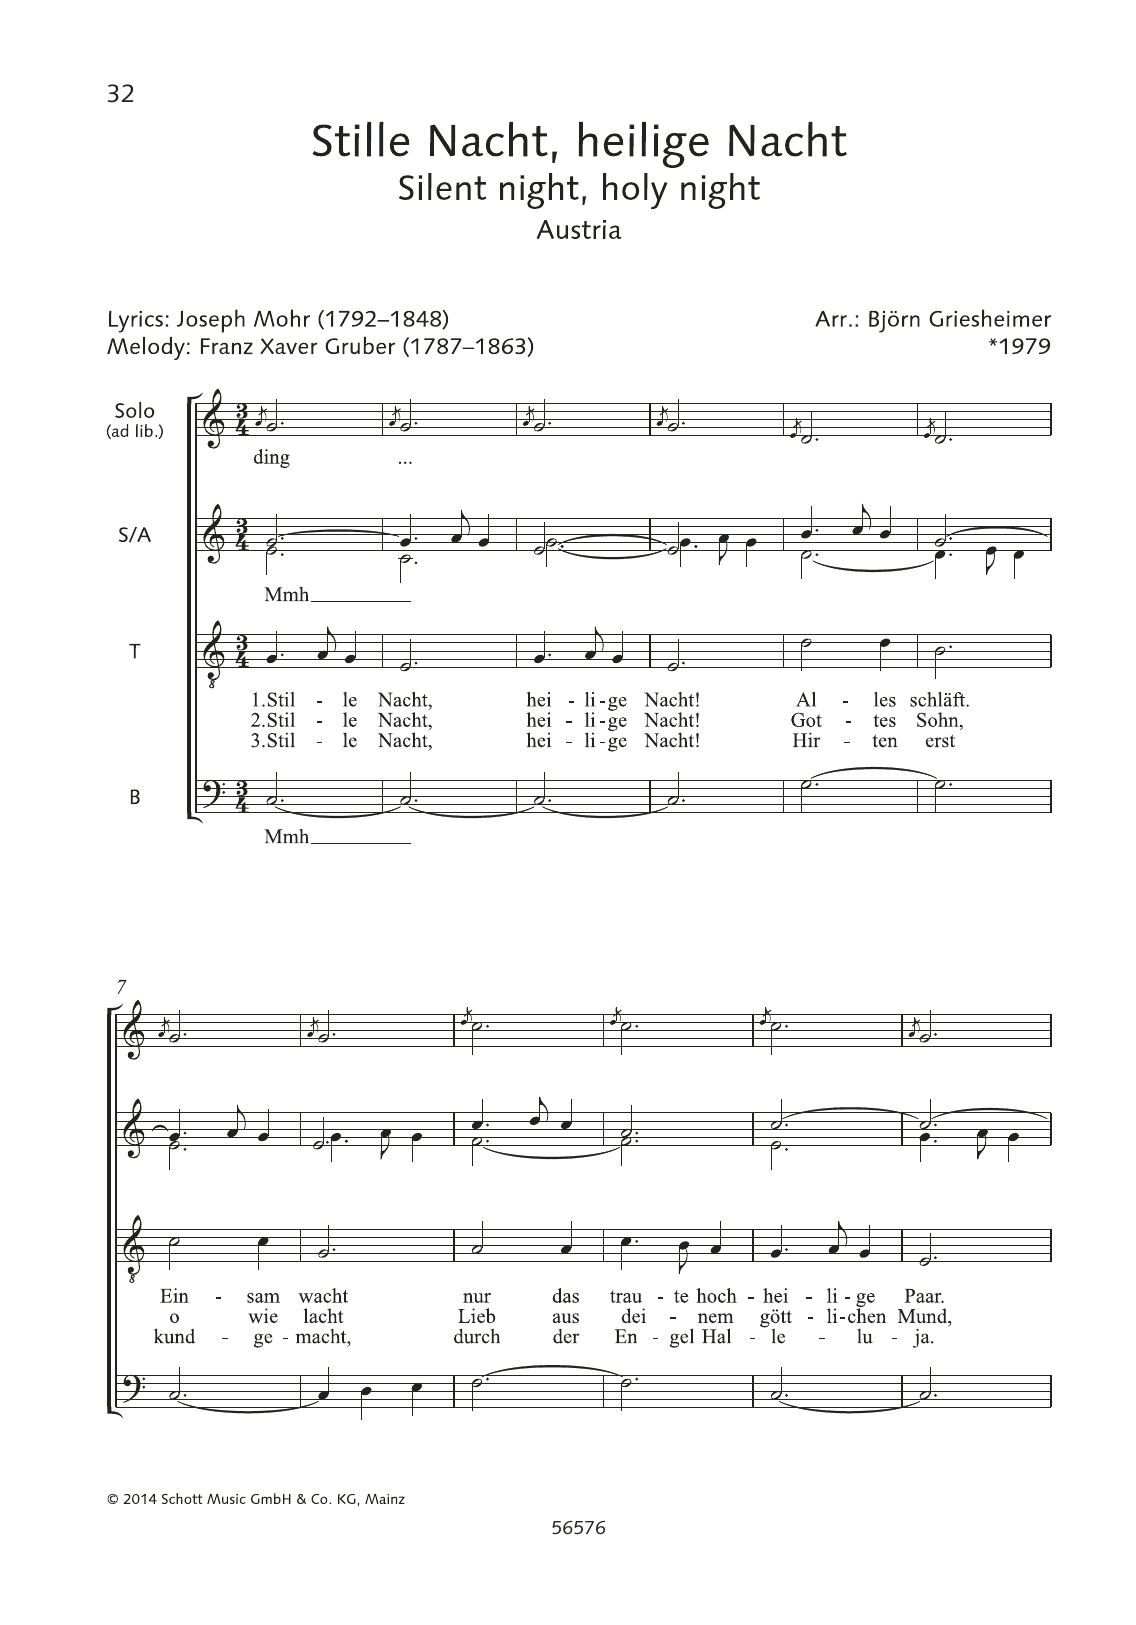 Stille Nacht, Heilige Nacht Sheet Music